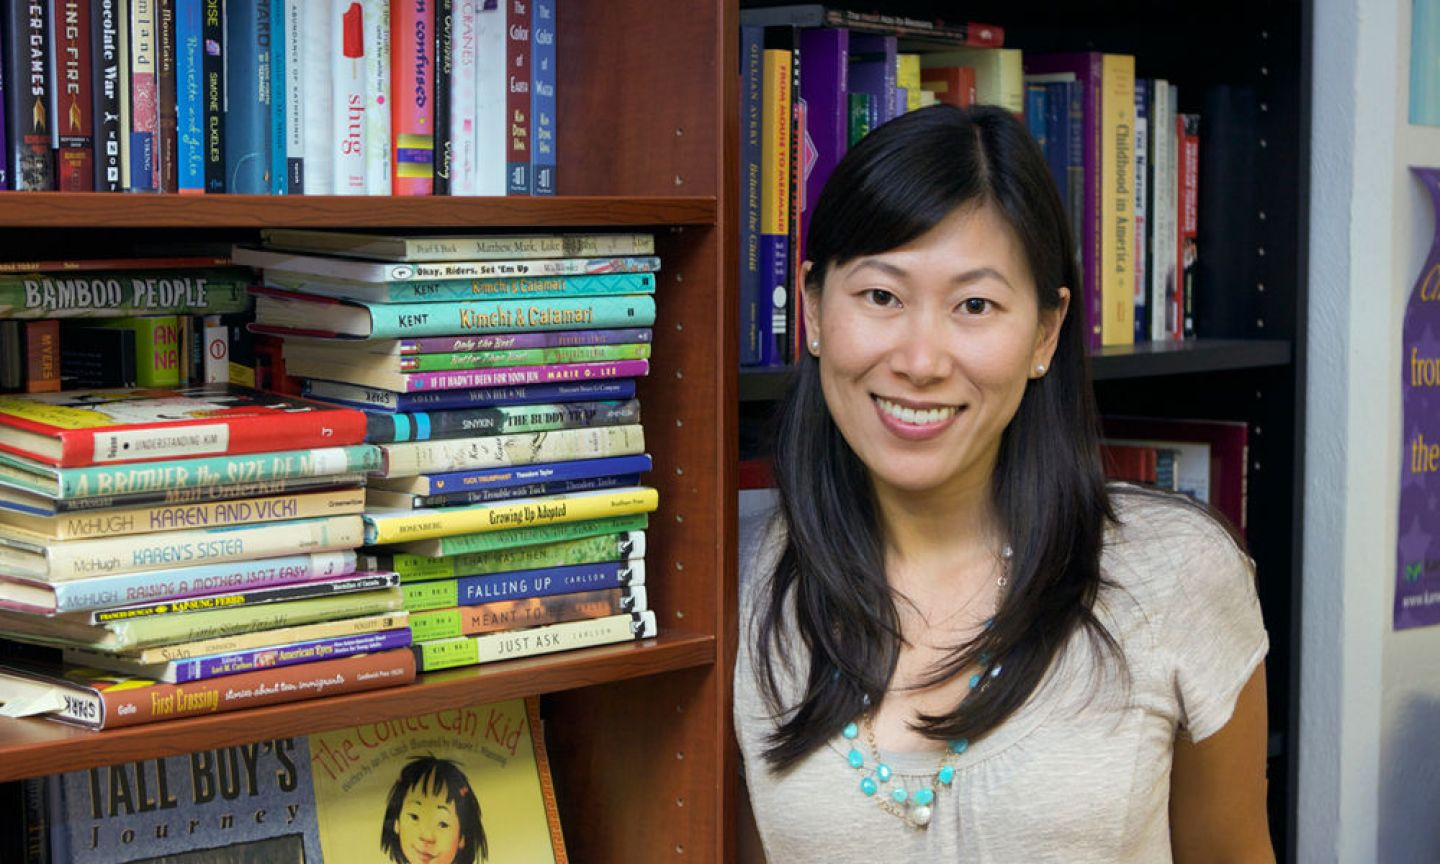 MLIS professor Sarah Park Dahlen, at the forefront of the We Need Diverse Books movement, commented in a Star Tribune story focused on the diverse winners of the 2018 ALA awards.